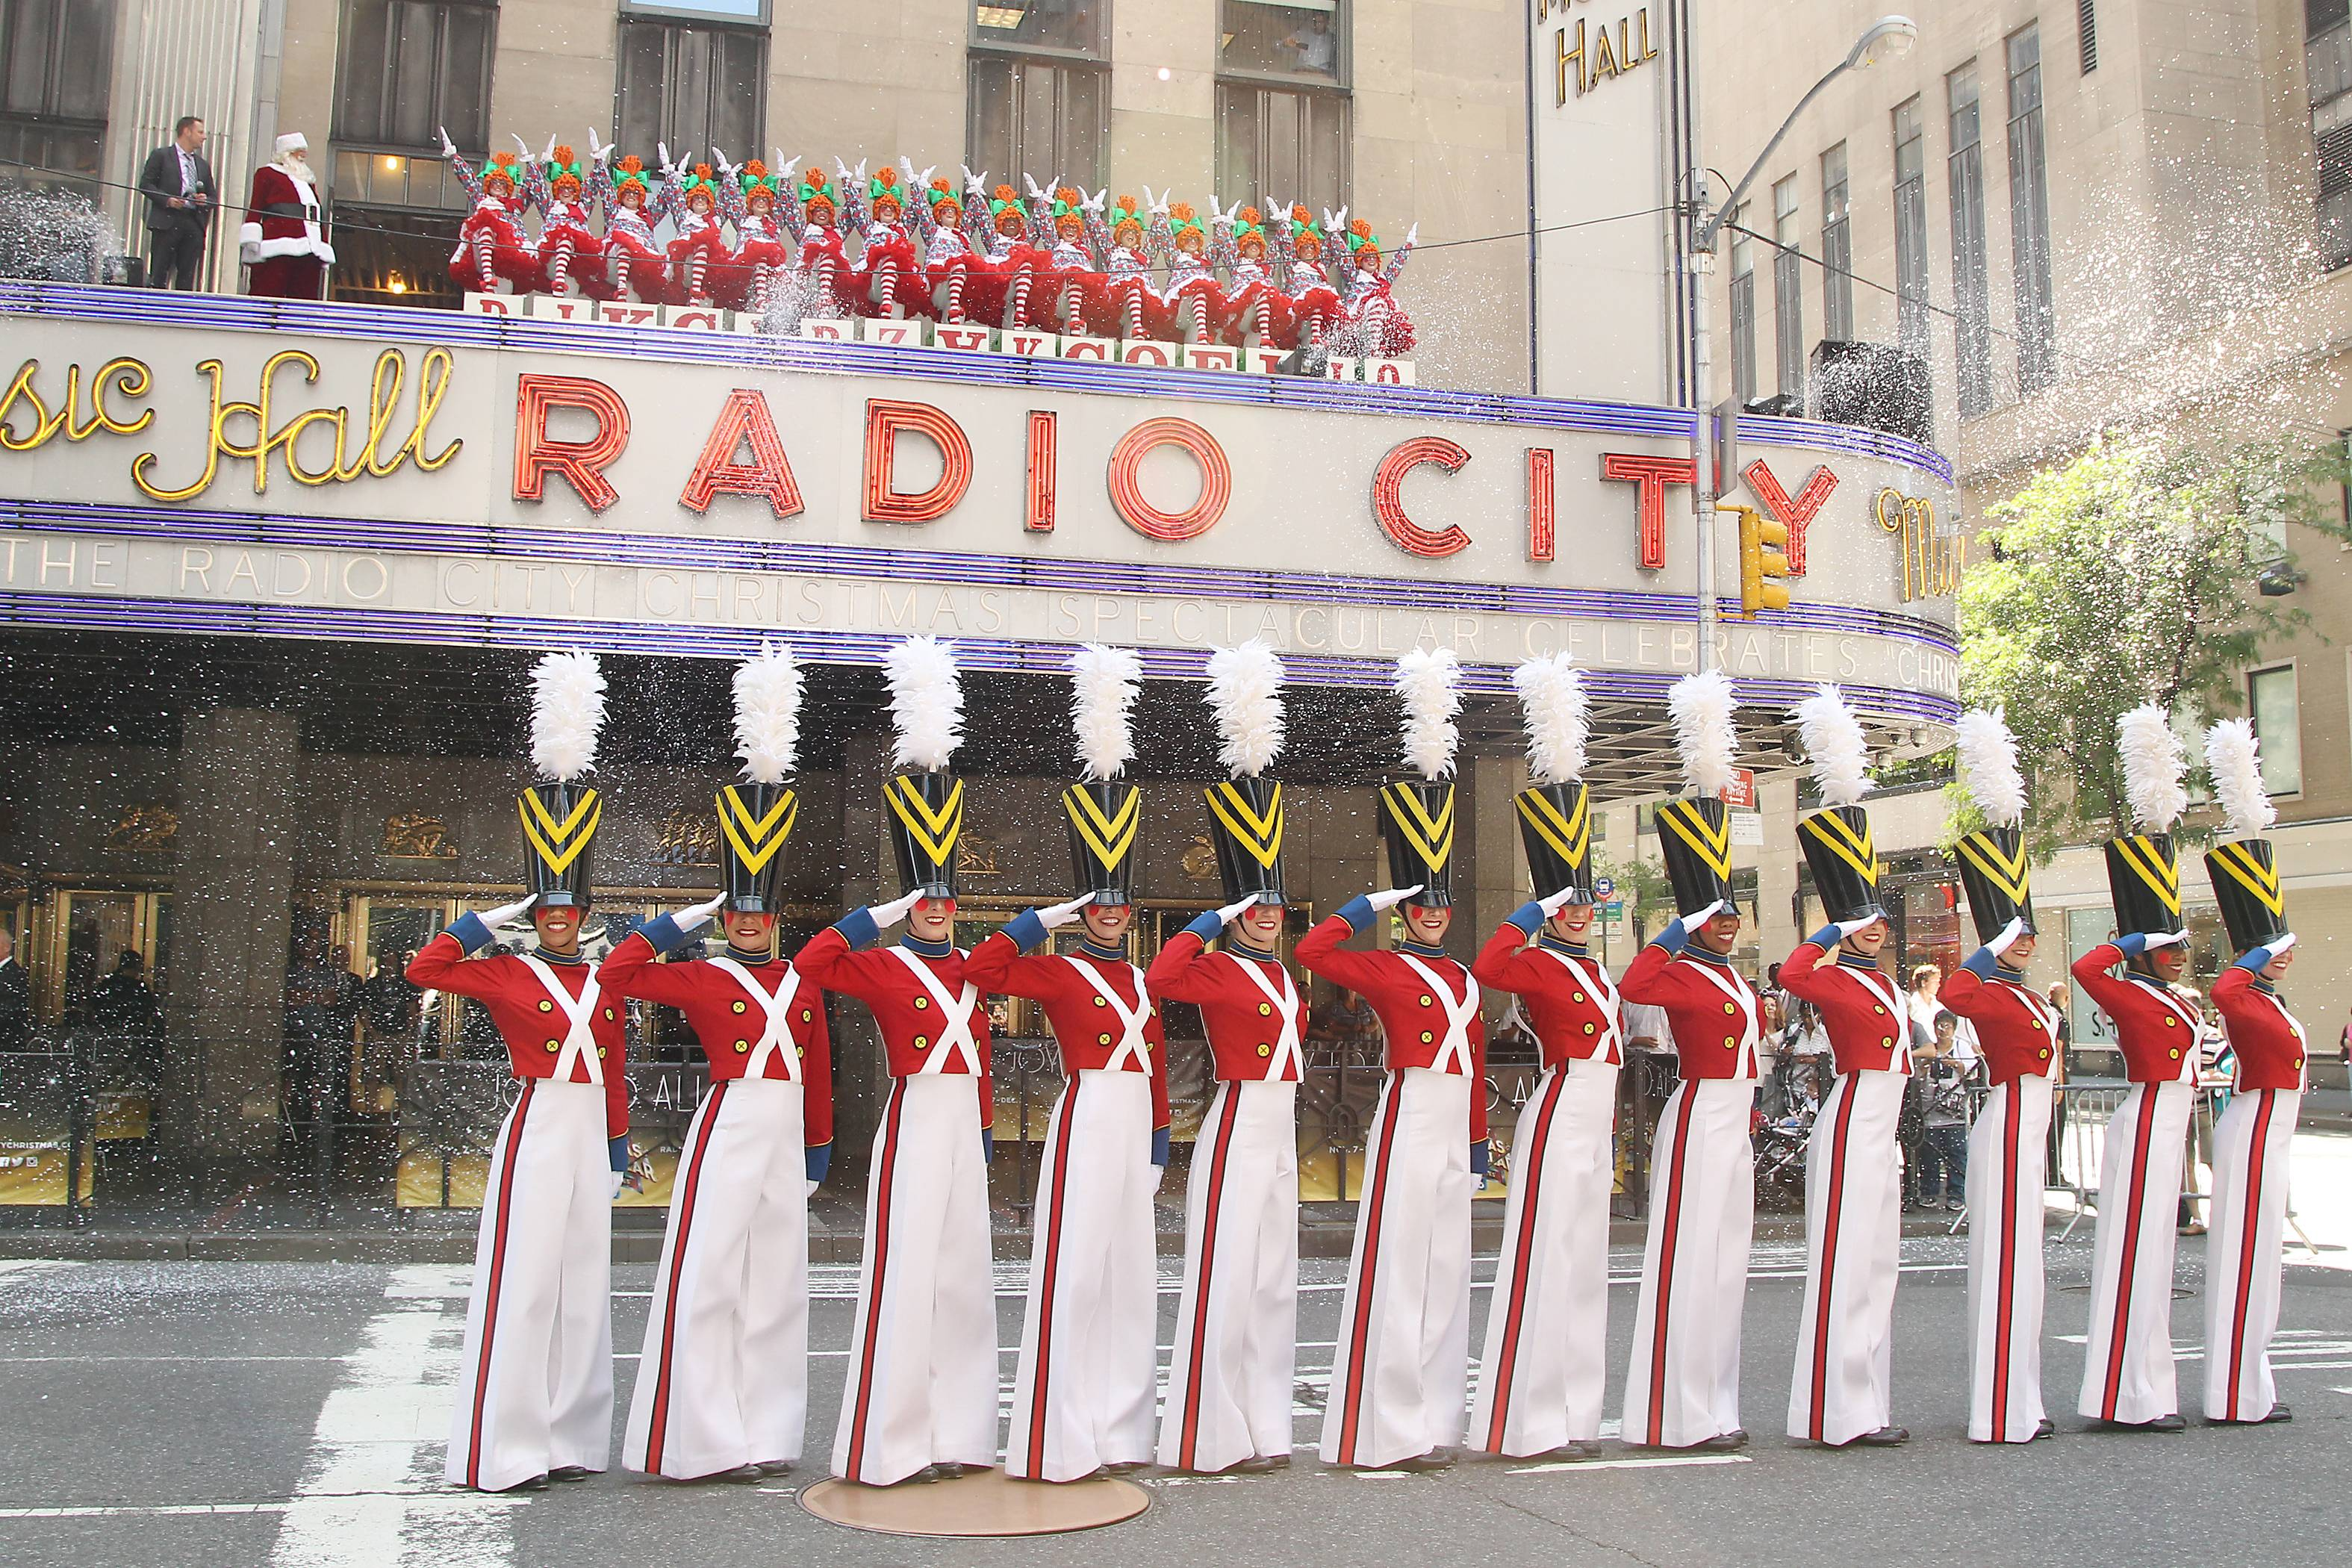 "This image released by Starpix shows The Rockettes dressed as toy soldiers and rag dolls at Radio City Music Hall in New York, Thursday, Aug. 14, 2014, kicking off the 2014 ""The Radio City Christmas Spectacular,"" which starts Nov. 7."